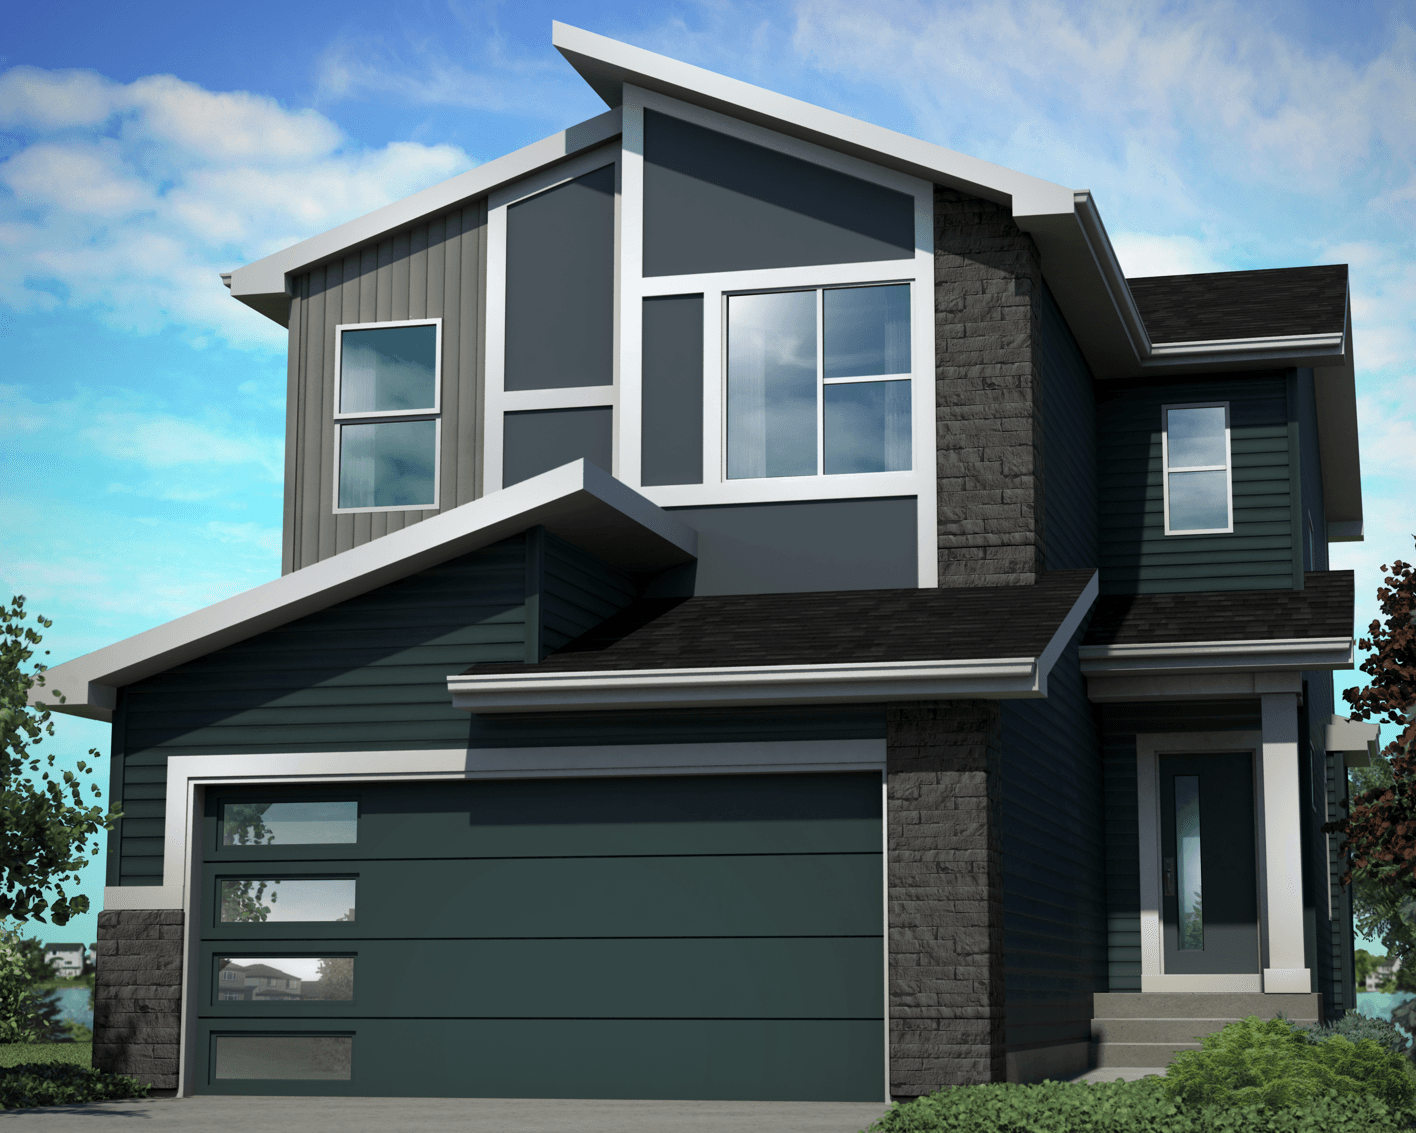 So What Exactly are Home Elevations? Contemporary Home Image